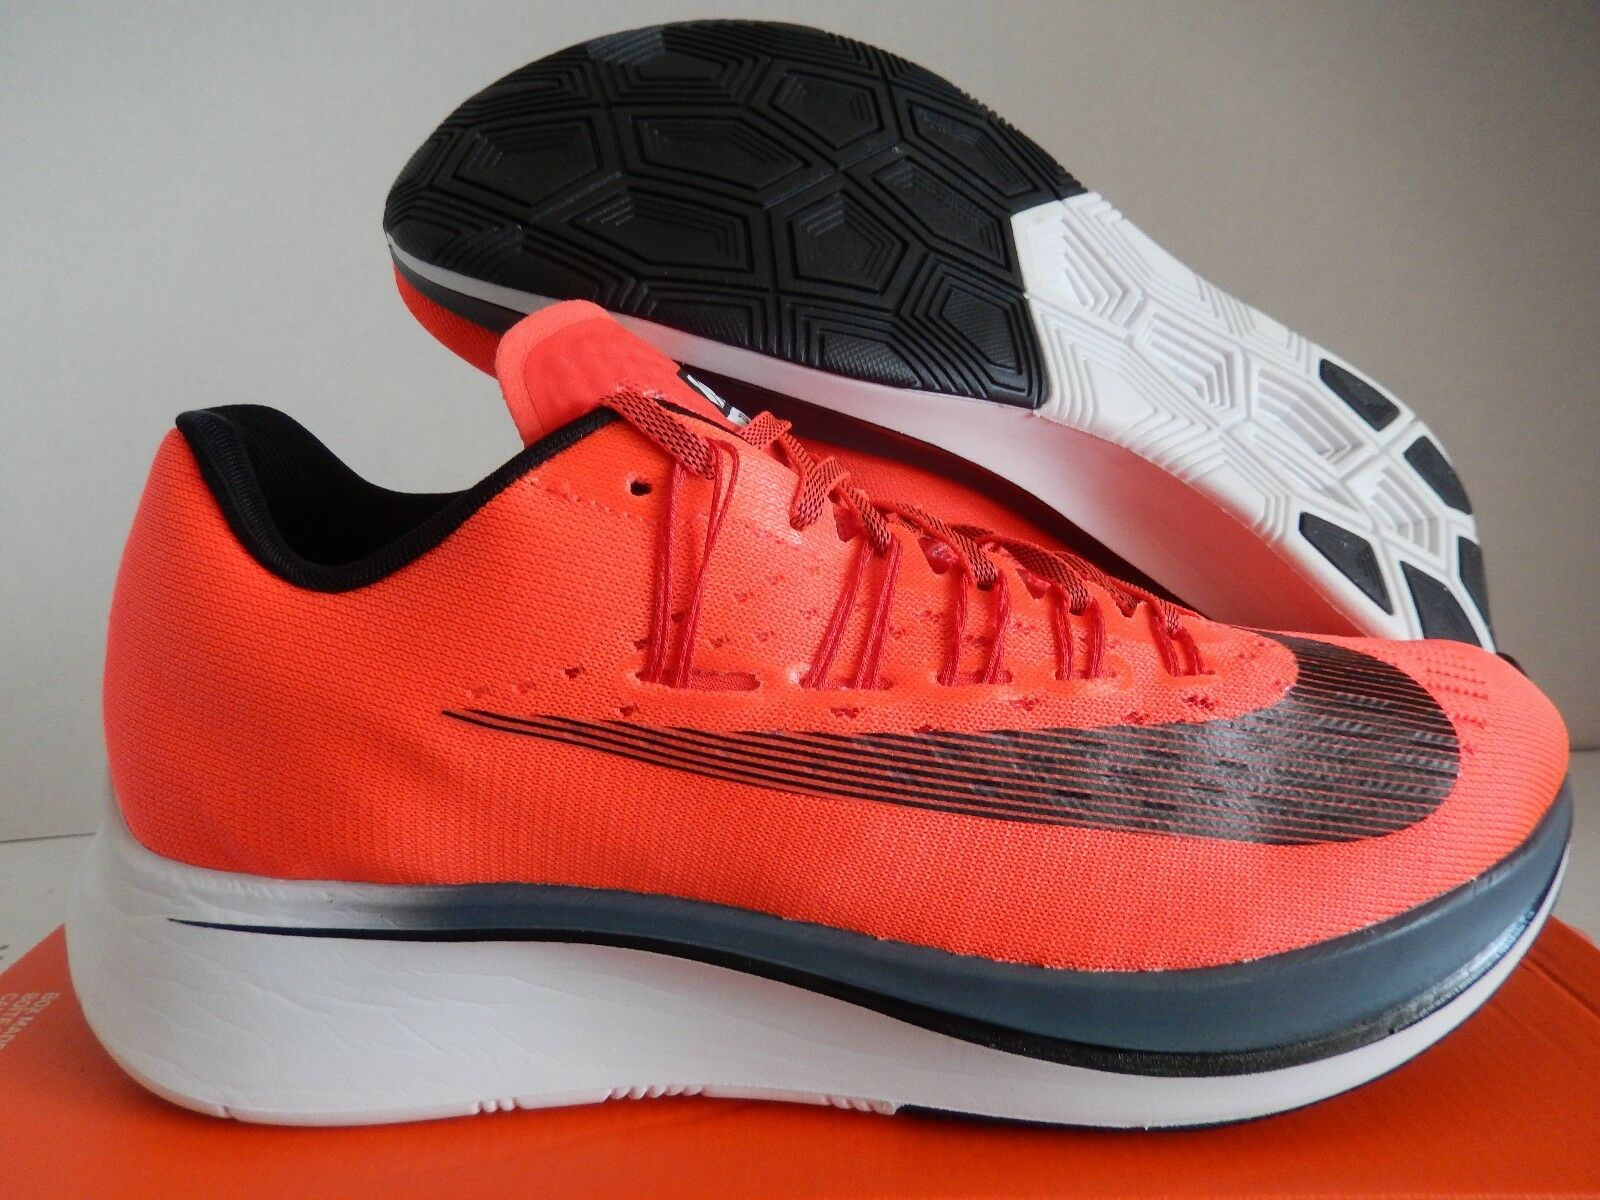 NIKE ZOOM FLY BRIGHT CRIMSON RED-BLACK-BLUE FOX SZ 11.5 [880848-614]